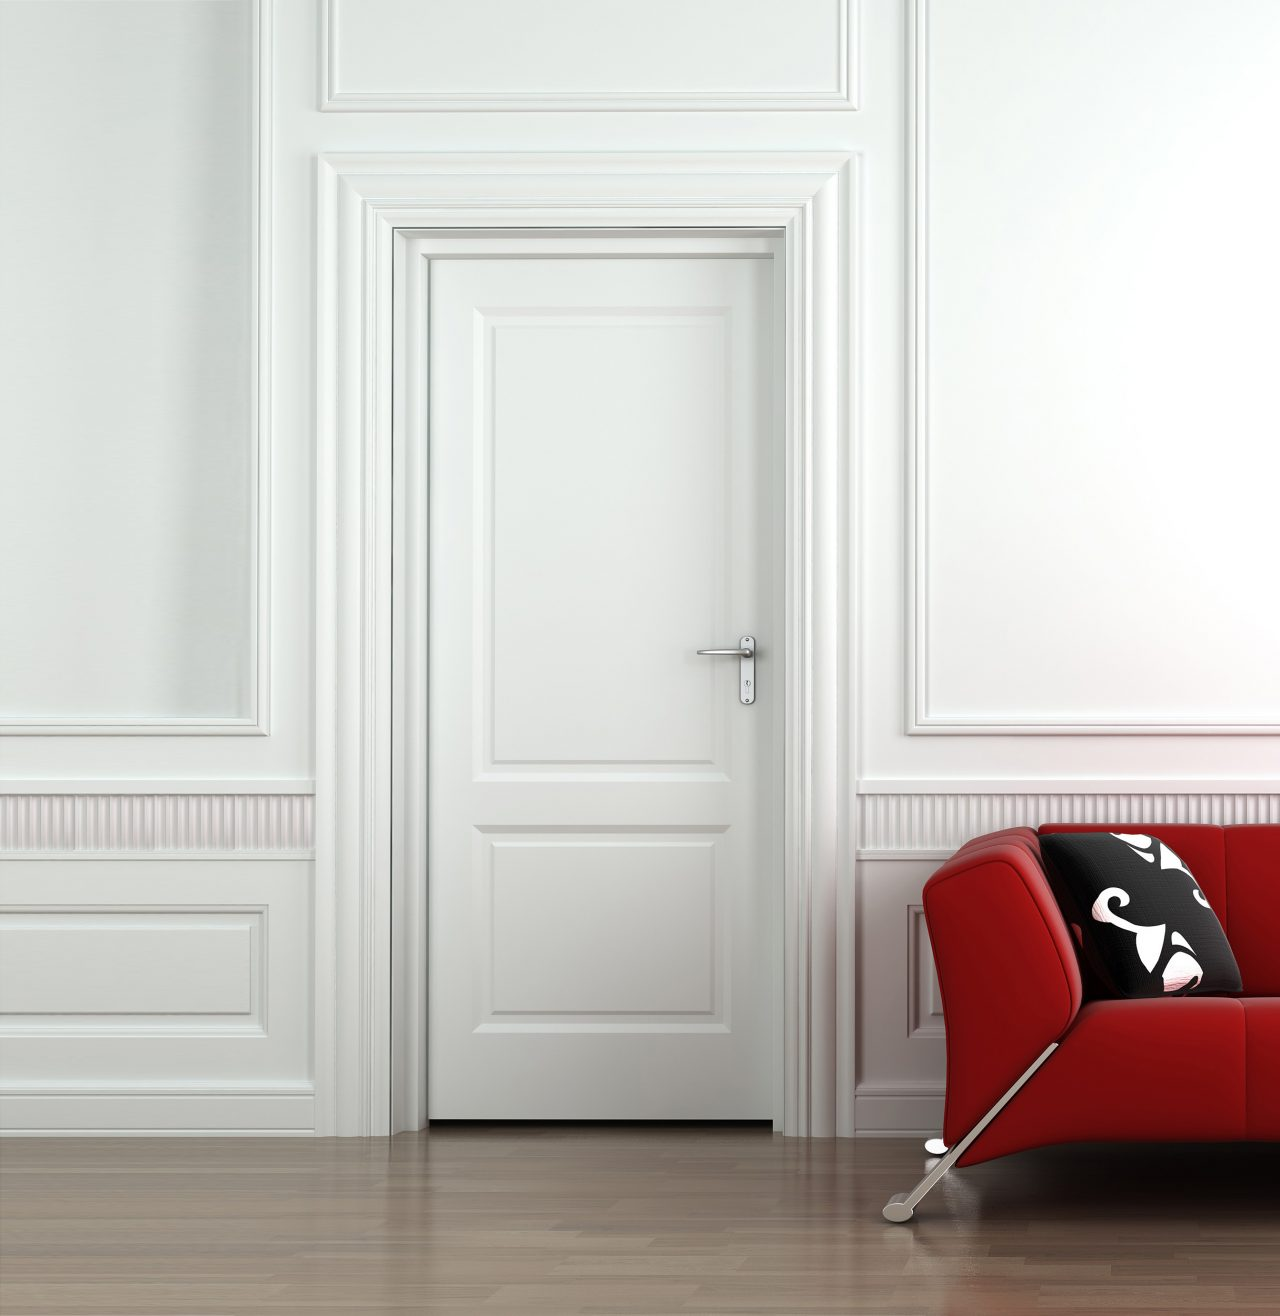 3d interior scene of a red couch on white classic wall